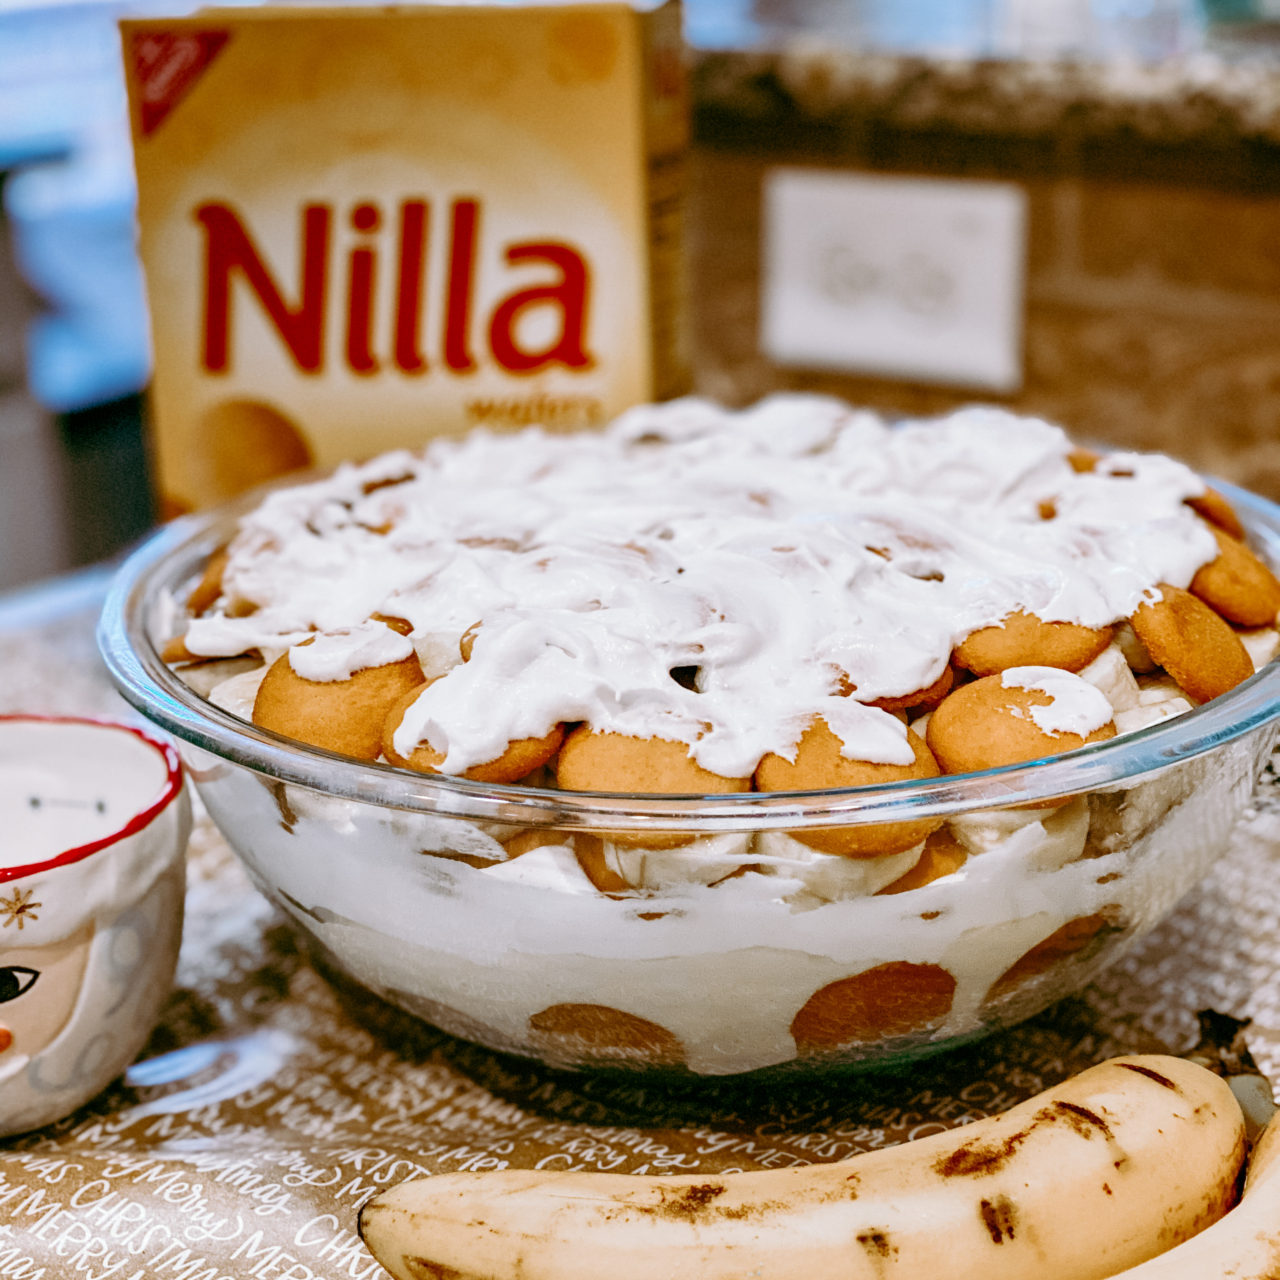 Quick, easy, and delicious banana pudding